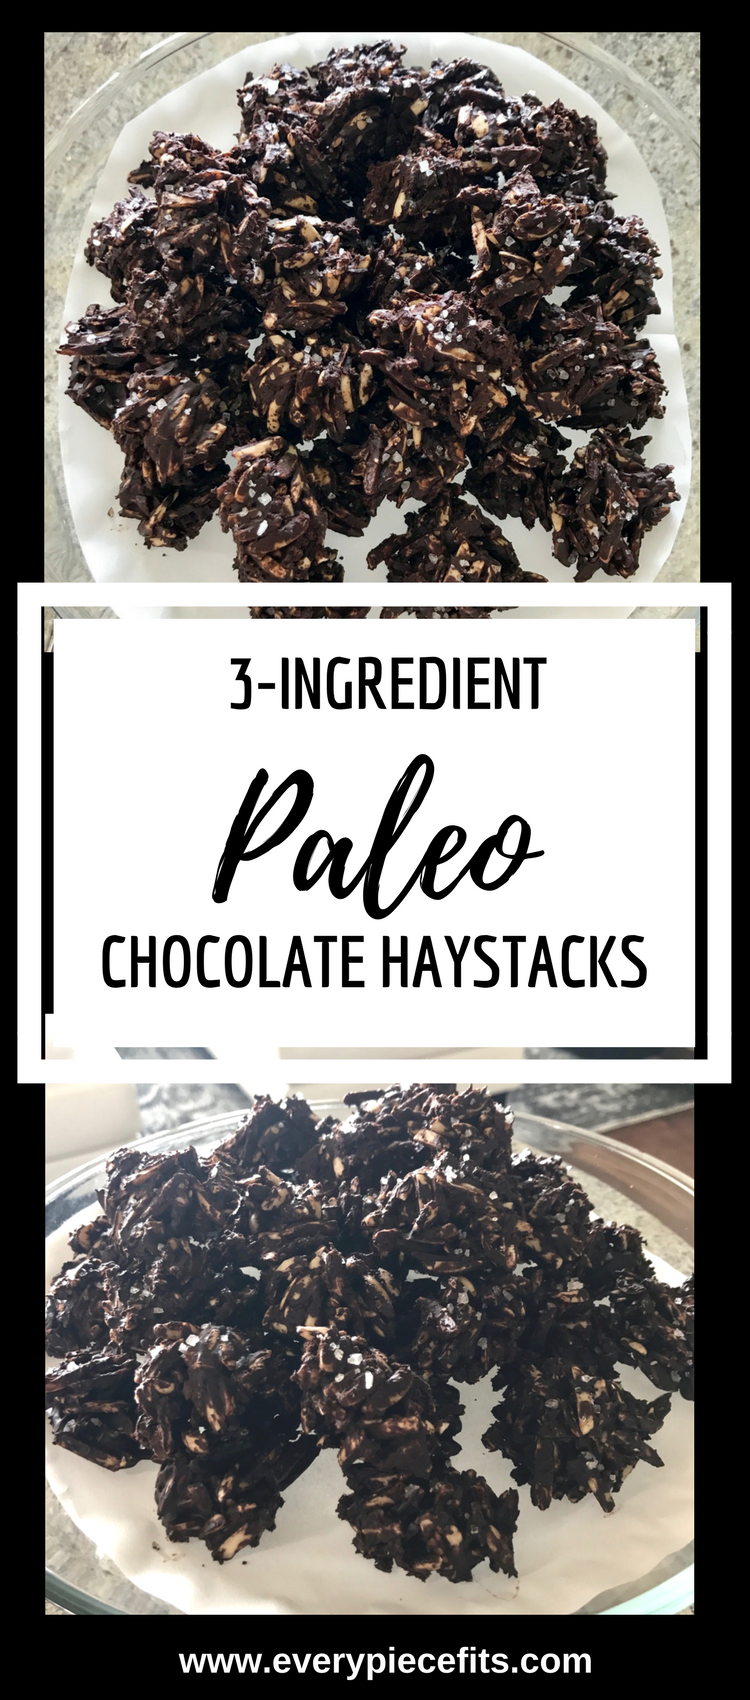 Pinterest Paleo Chocolate Haystacks.png